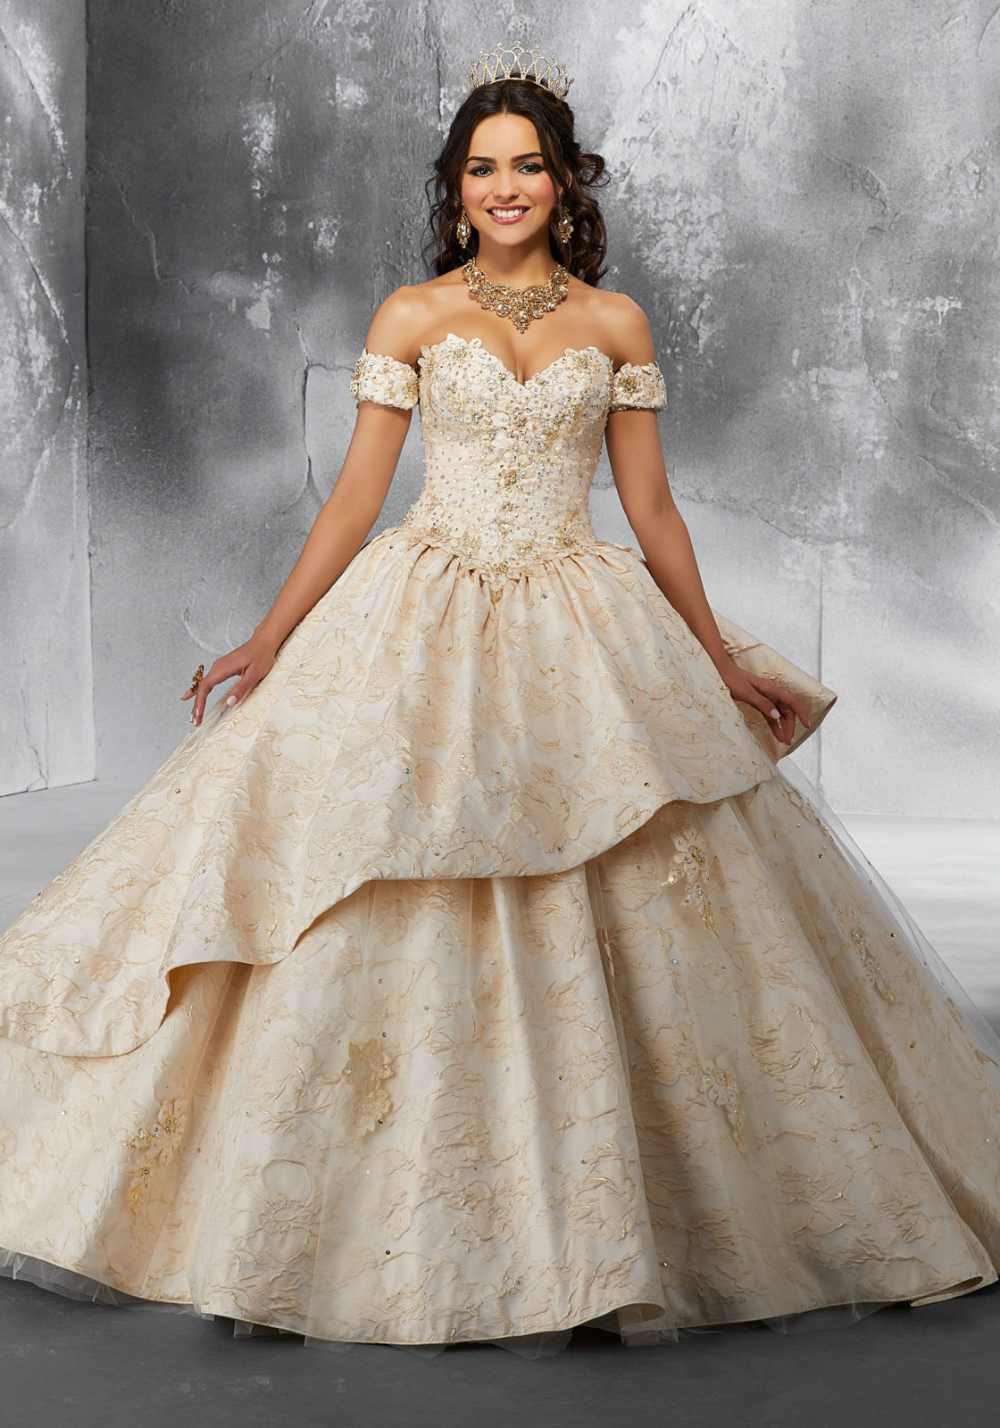 Beaded Brocade Ballgown with Tulle Skirt Overlay and